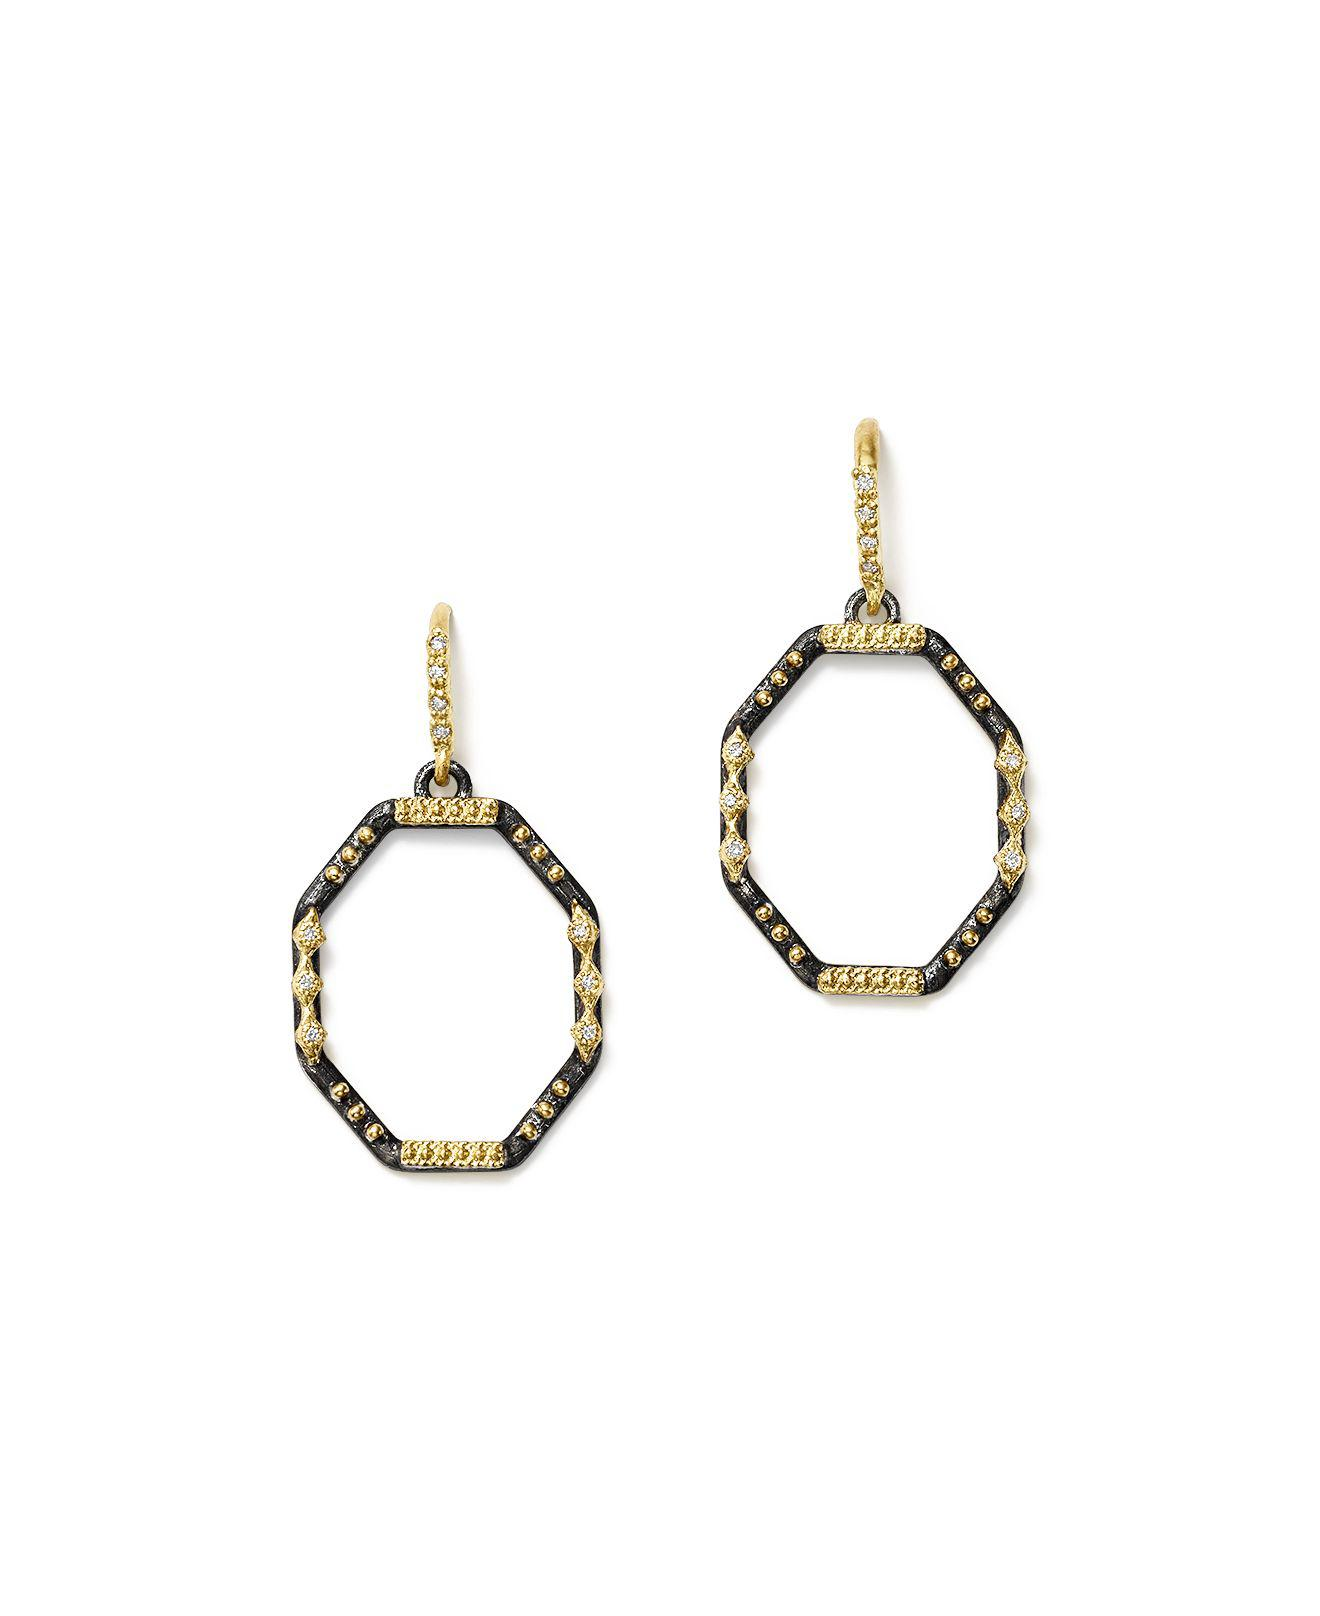 Armenta Midnight Silver & 18k Gold Open-Drop Earrings 925DE0g5